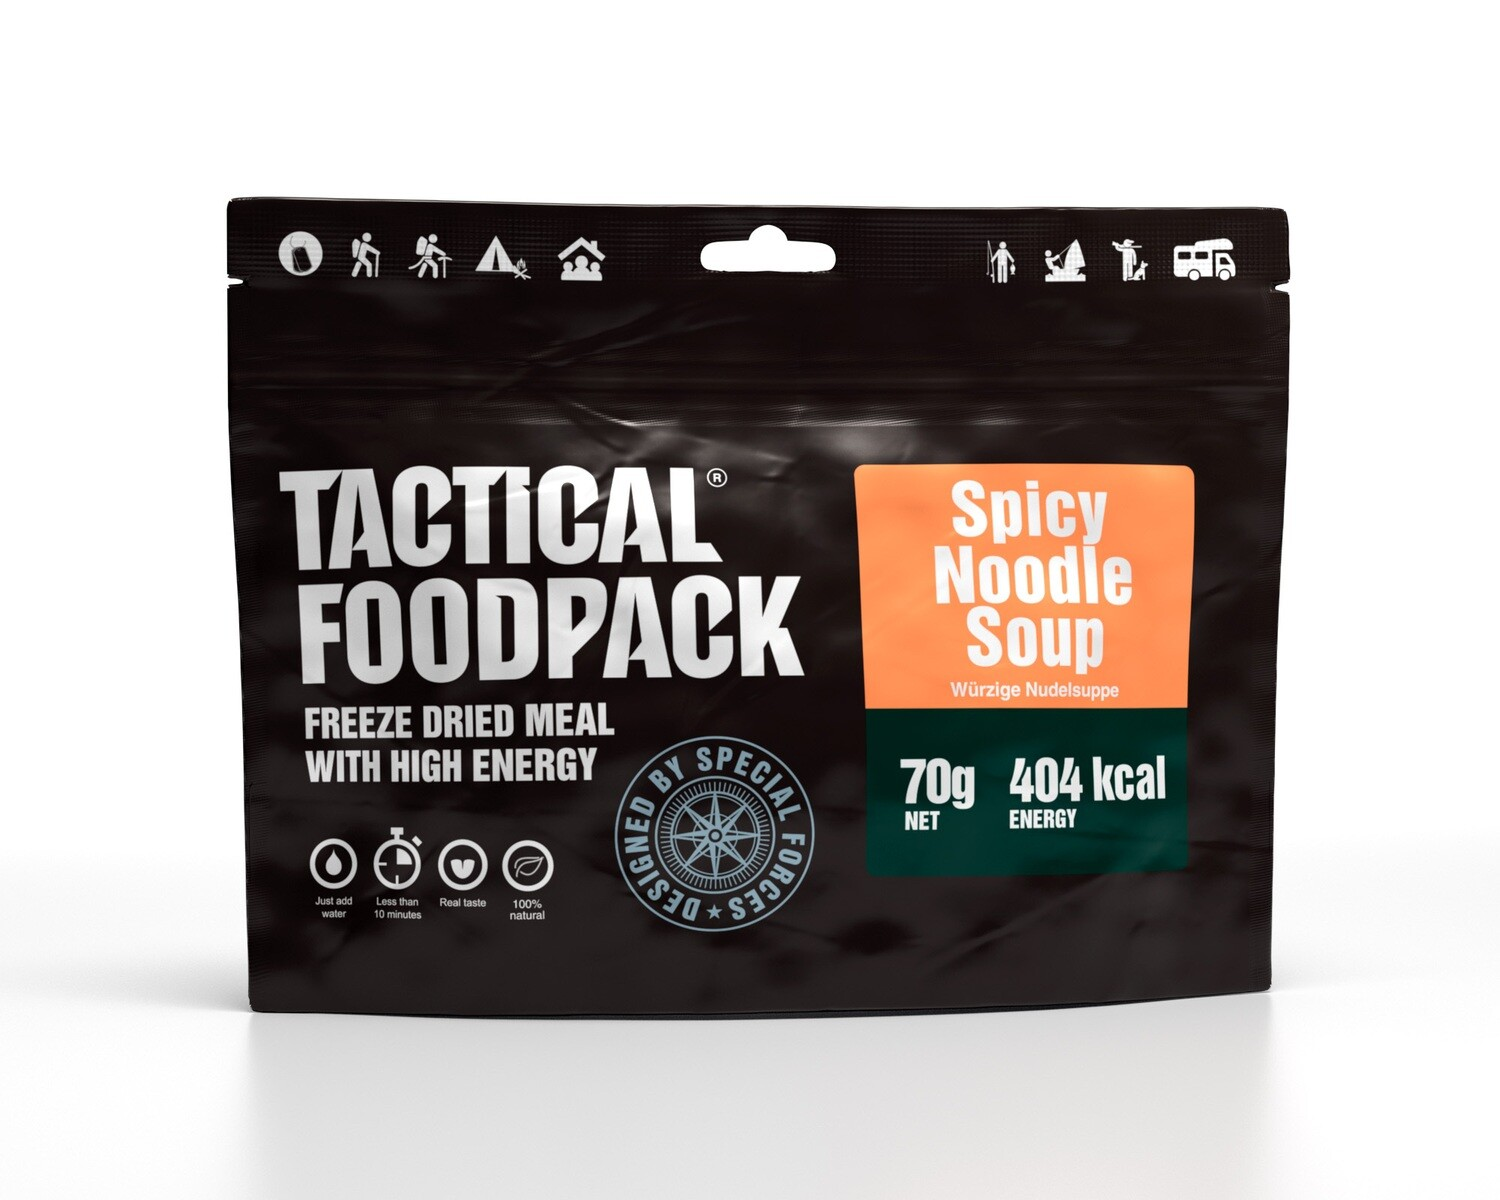 Tactical Foodpack - Spicy Noodle Soup